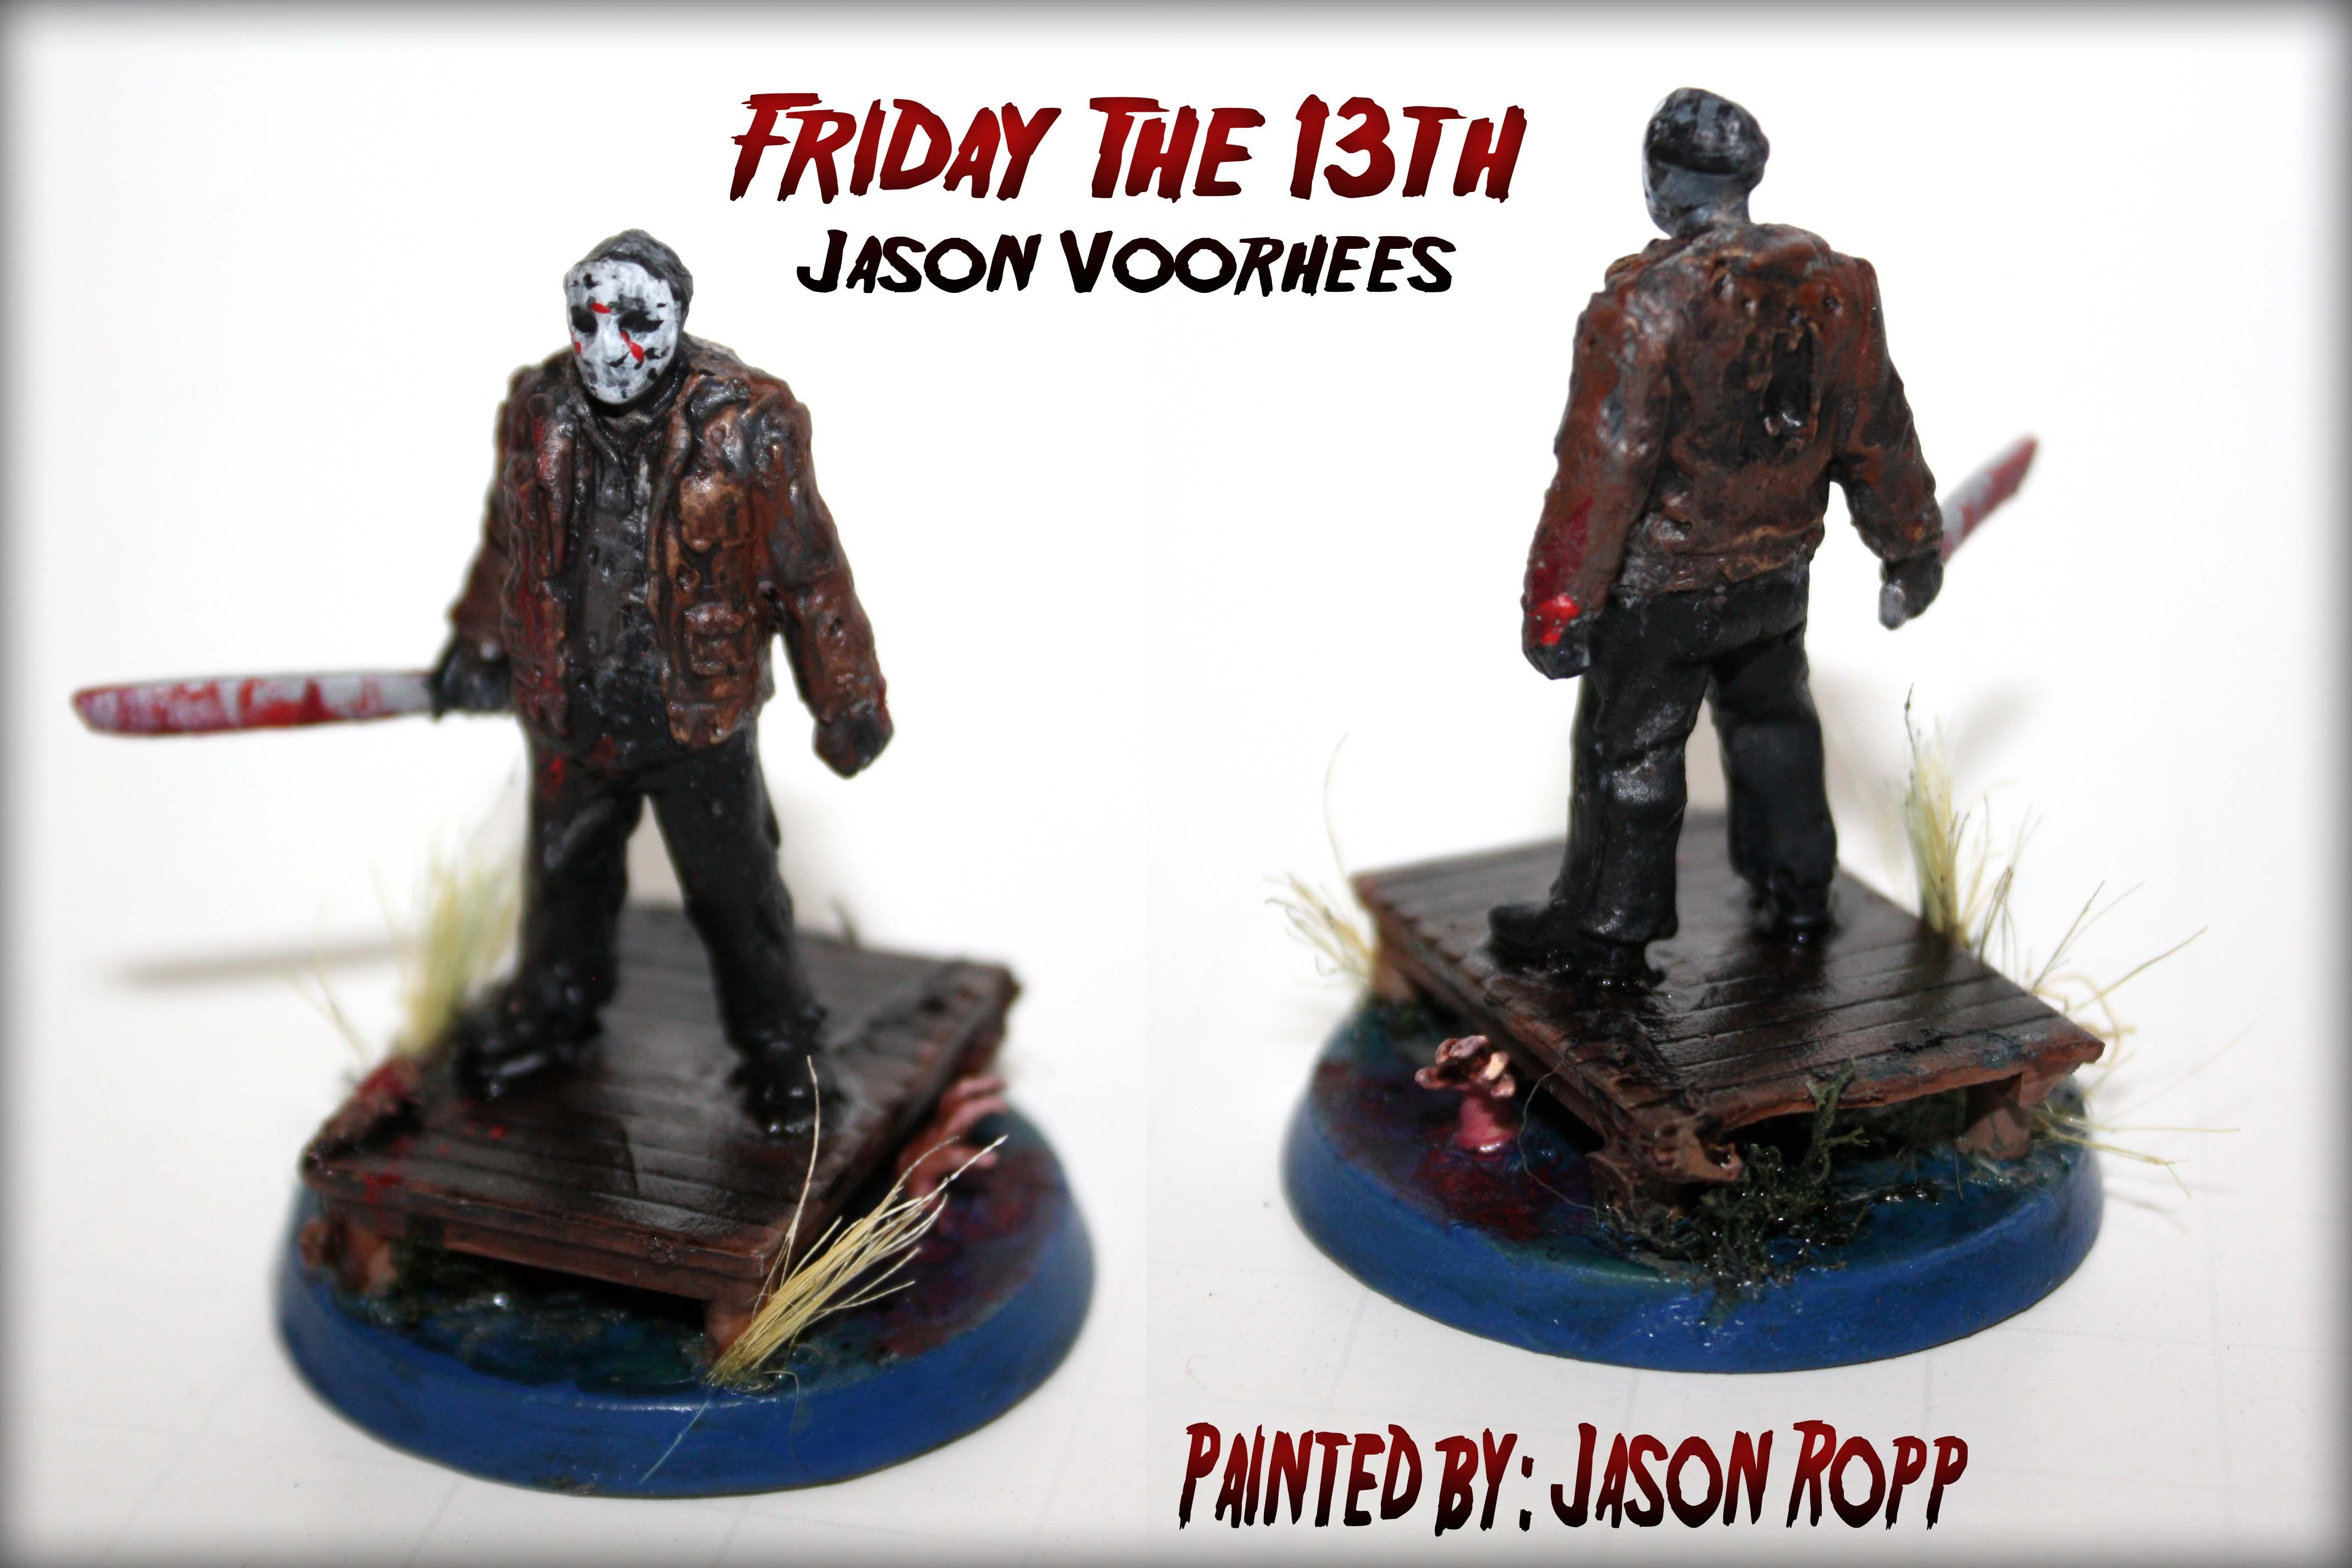 Army Of Darkness, Ash, Avp, Bigfoot, Cryptozoology, Deadly, Figures, Freddy, Friday The 13th, Ghost, Halloween, Horrorclix, Horrors, Jason, Killer, Kruger, Leatherface, Mini, Miniatures, Models, New Line, Nightmare On Elm St., Psycho, Scary, Terror, Vorrhees, Vs., Walkers, Walking Dead, Wargame, Wargamer, Worm, Zombie